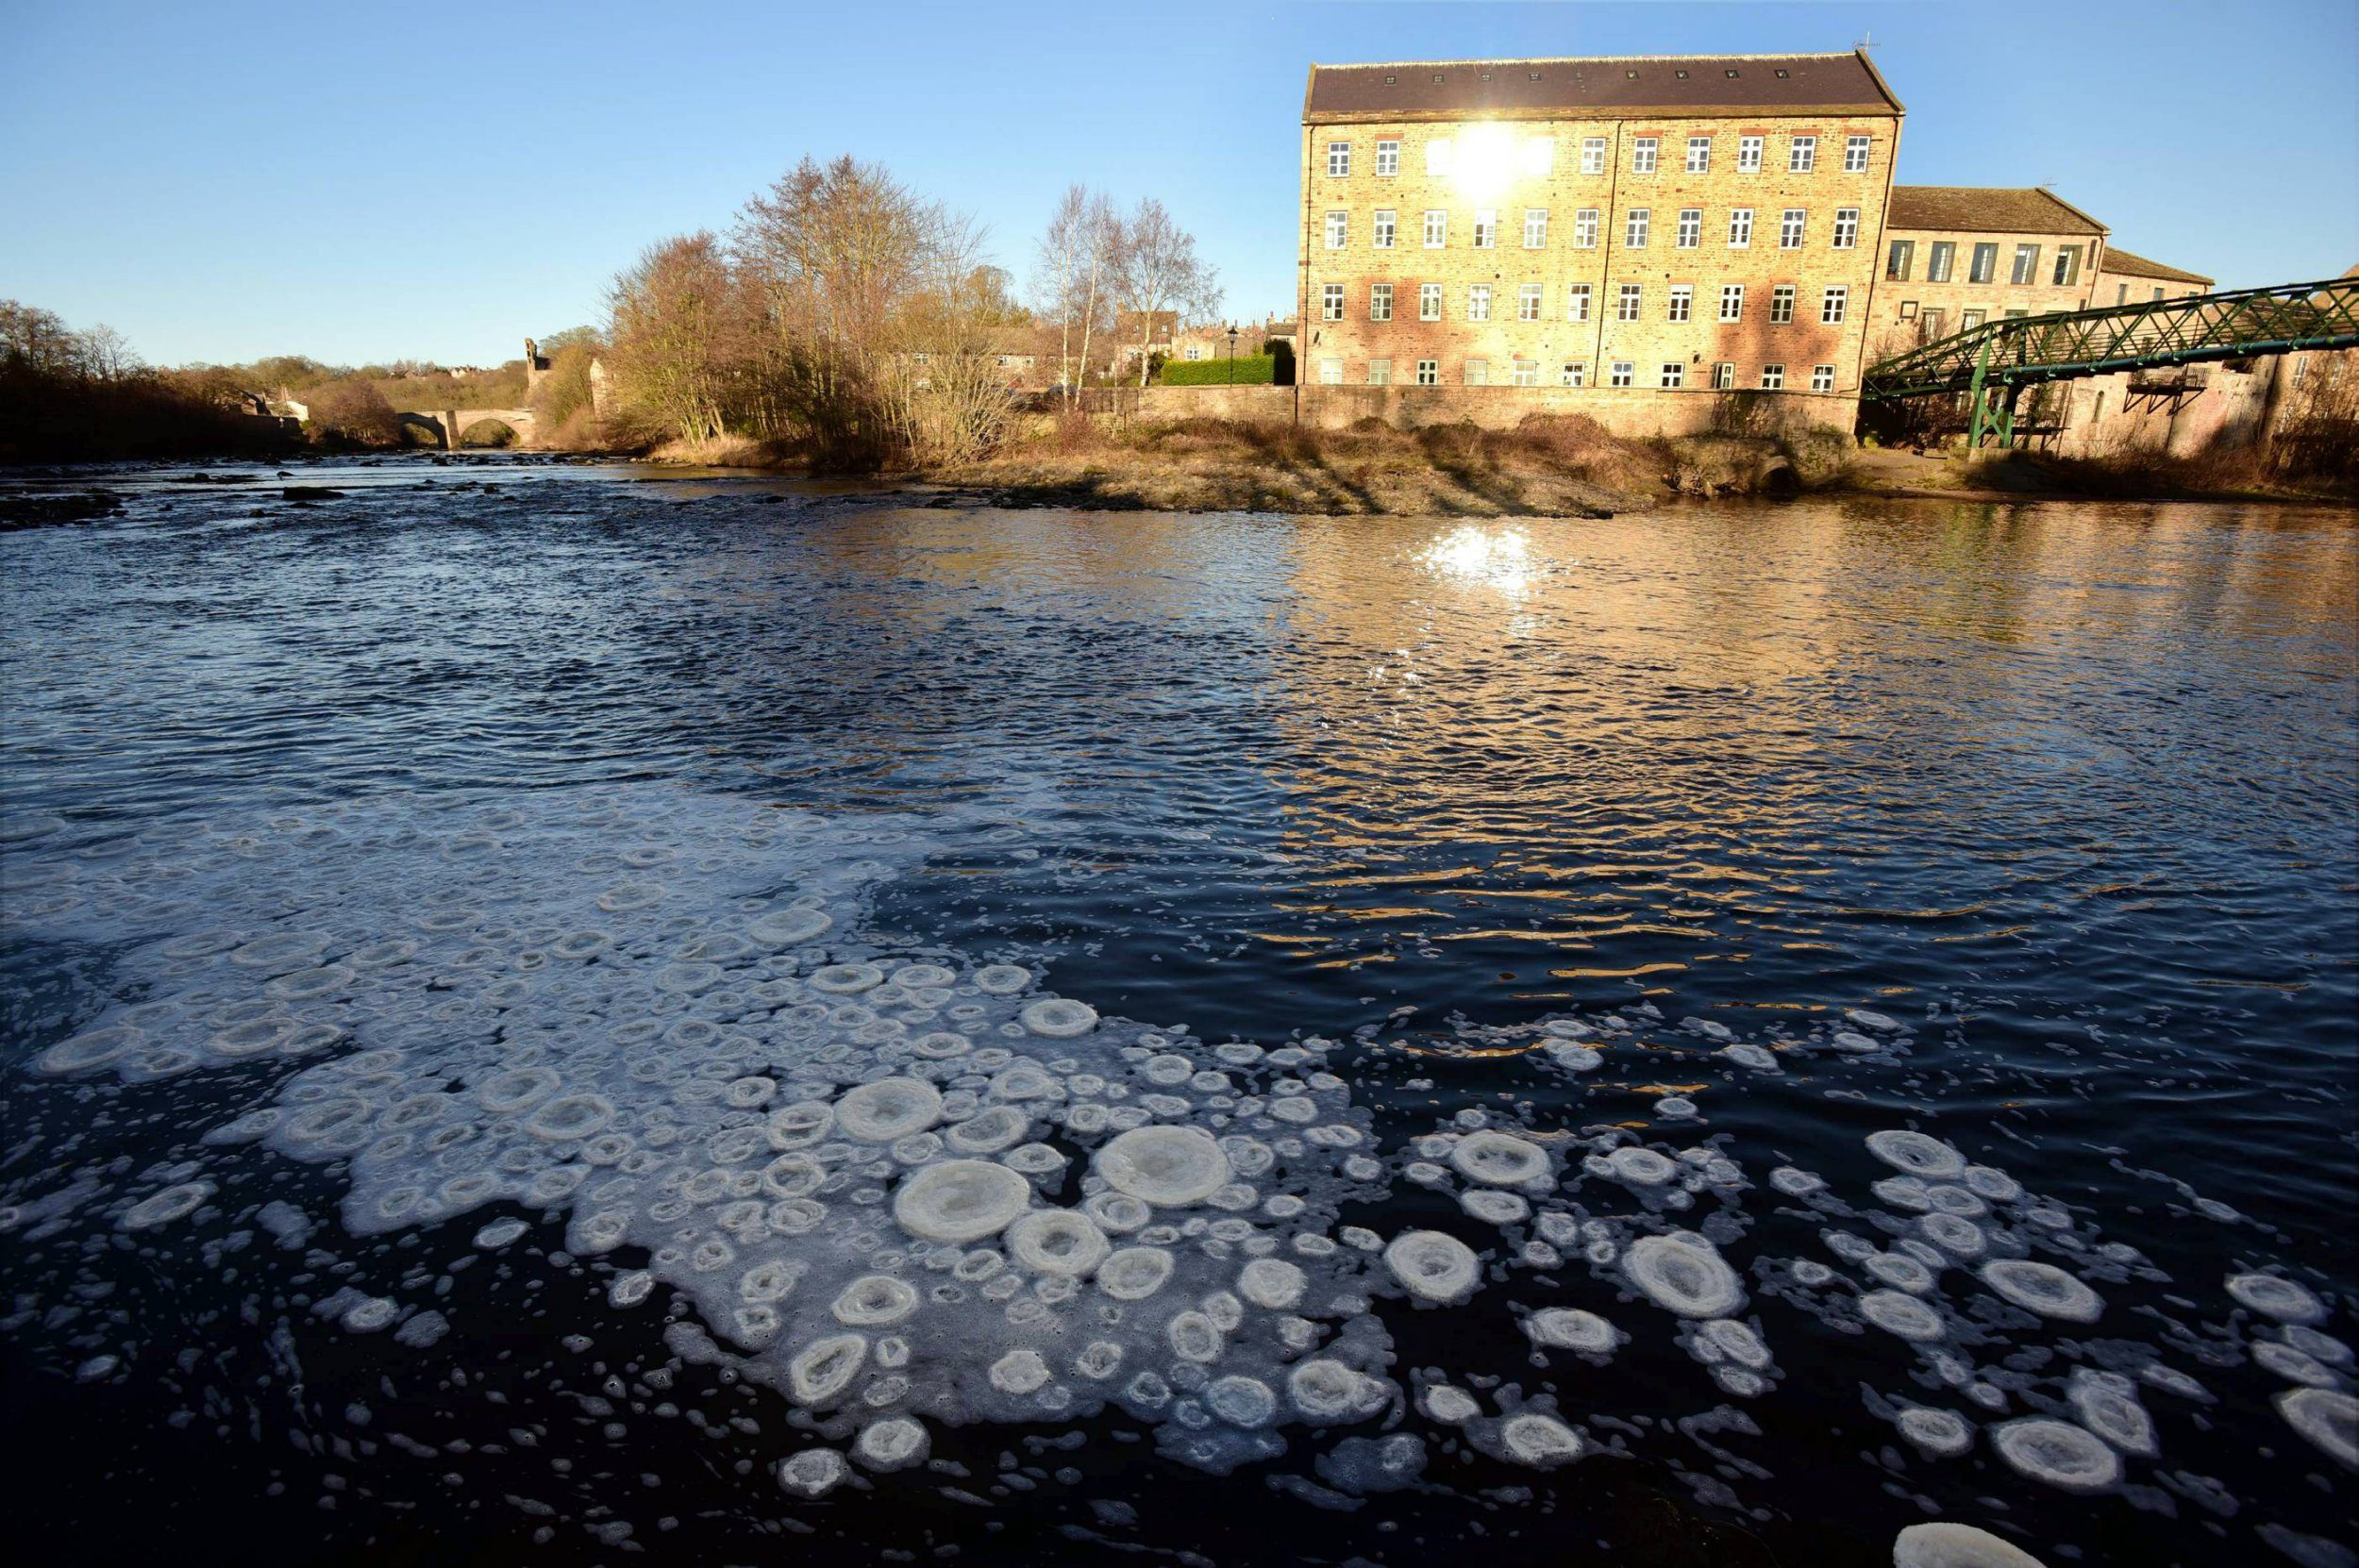 Dated: 23/01/2019 Rare 'ice pancakes' form on the fast flowing River Tees in Barnard Castle, County Durham this afternoon (WED), due to the sub-zero temperatures. Most frequently seen in the Baltic Sea and around Antarctica, this rare phenomenon sees pieces of foam turned into ice knock against each other as they freeze and grow, causing their edges to rounden. Small rims are then created on the edges as the knocking causes splashing water to freeze and join the rim.